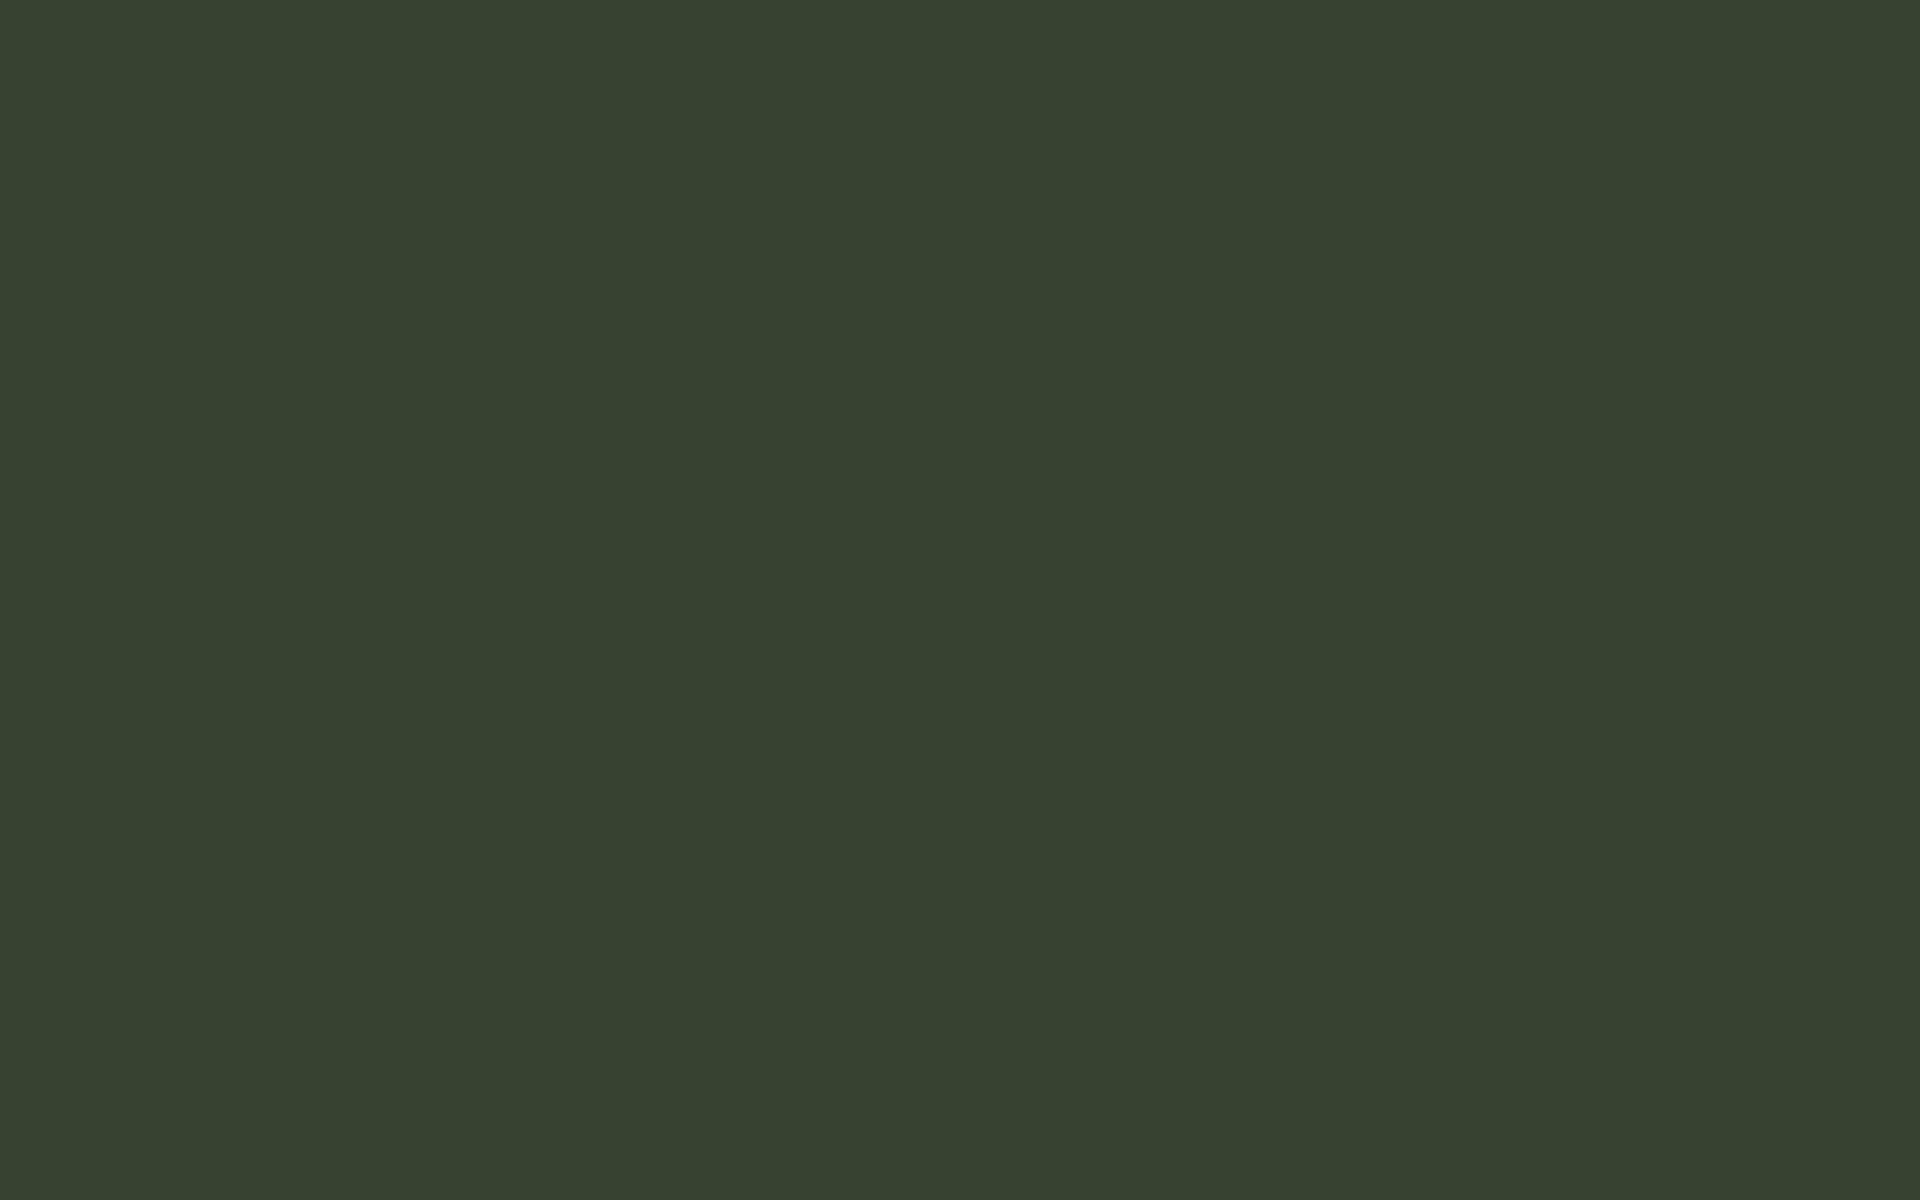 1920x1200 Kombu Green Solid Color Background